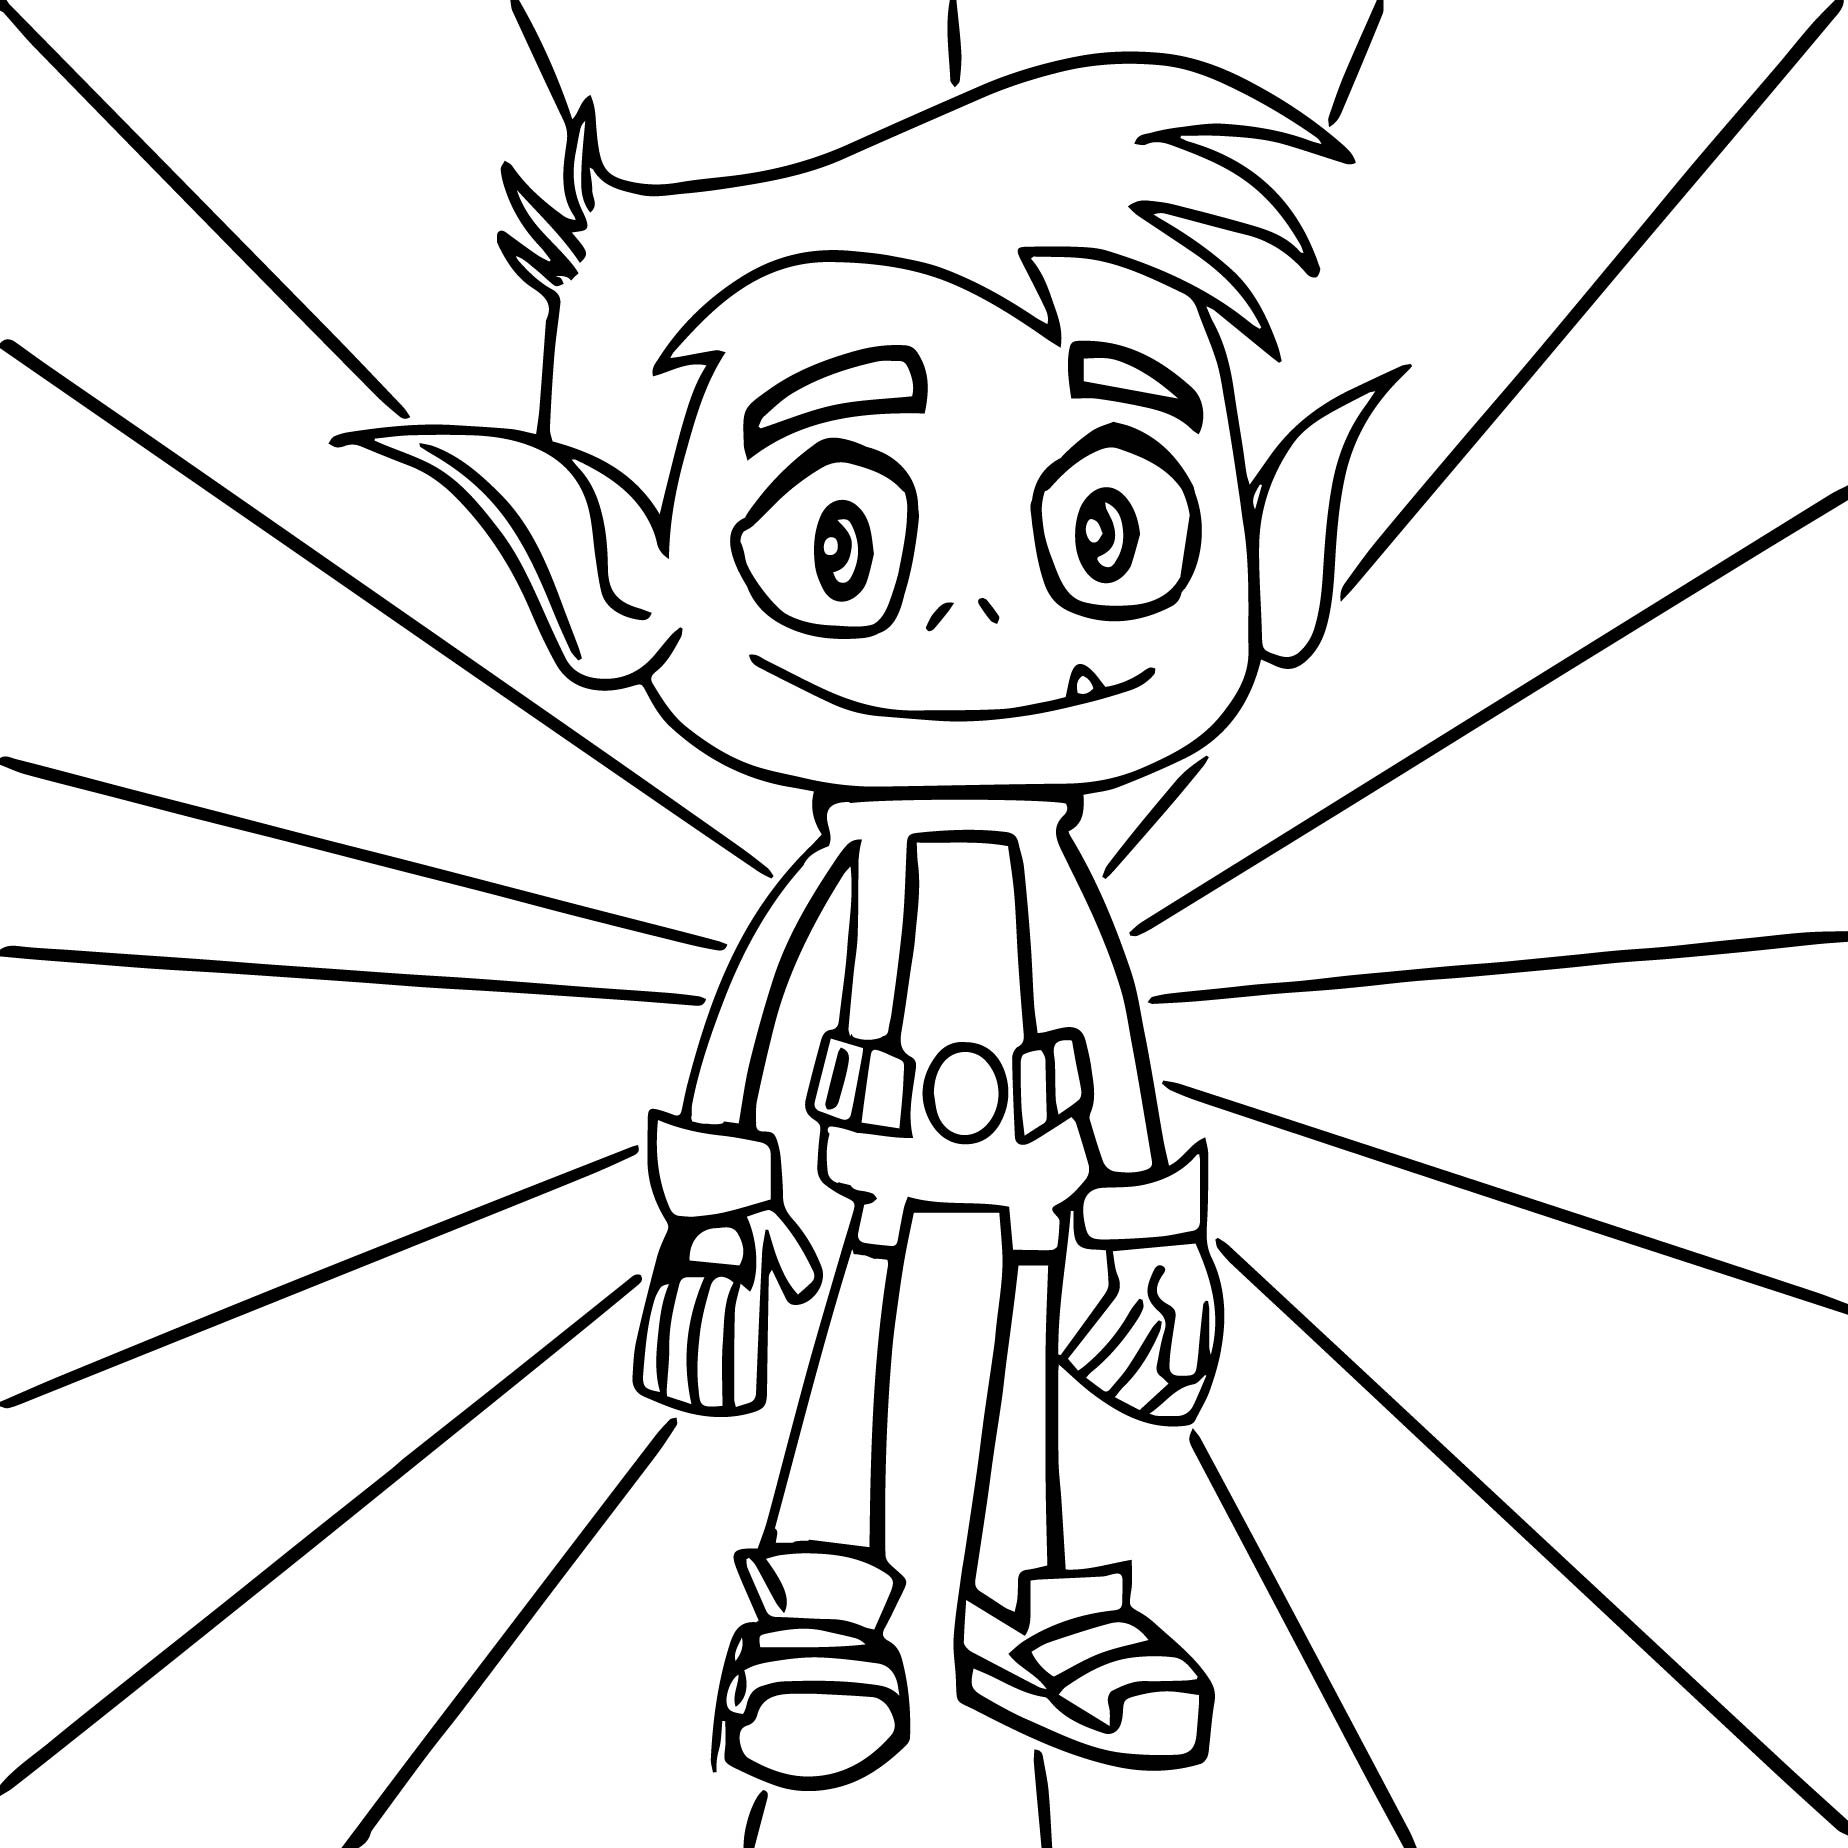 boy coloring page - teen titans coloring pages best coloring pages for kids